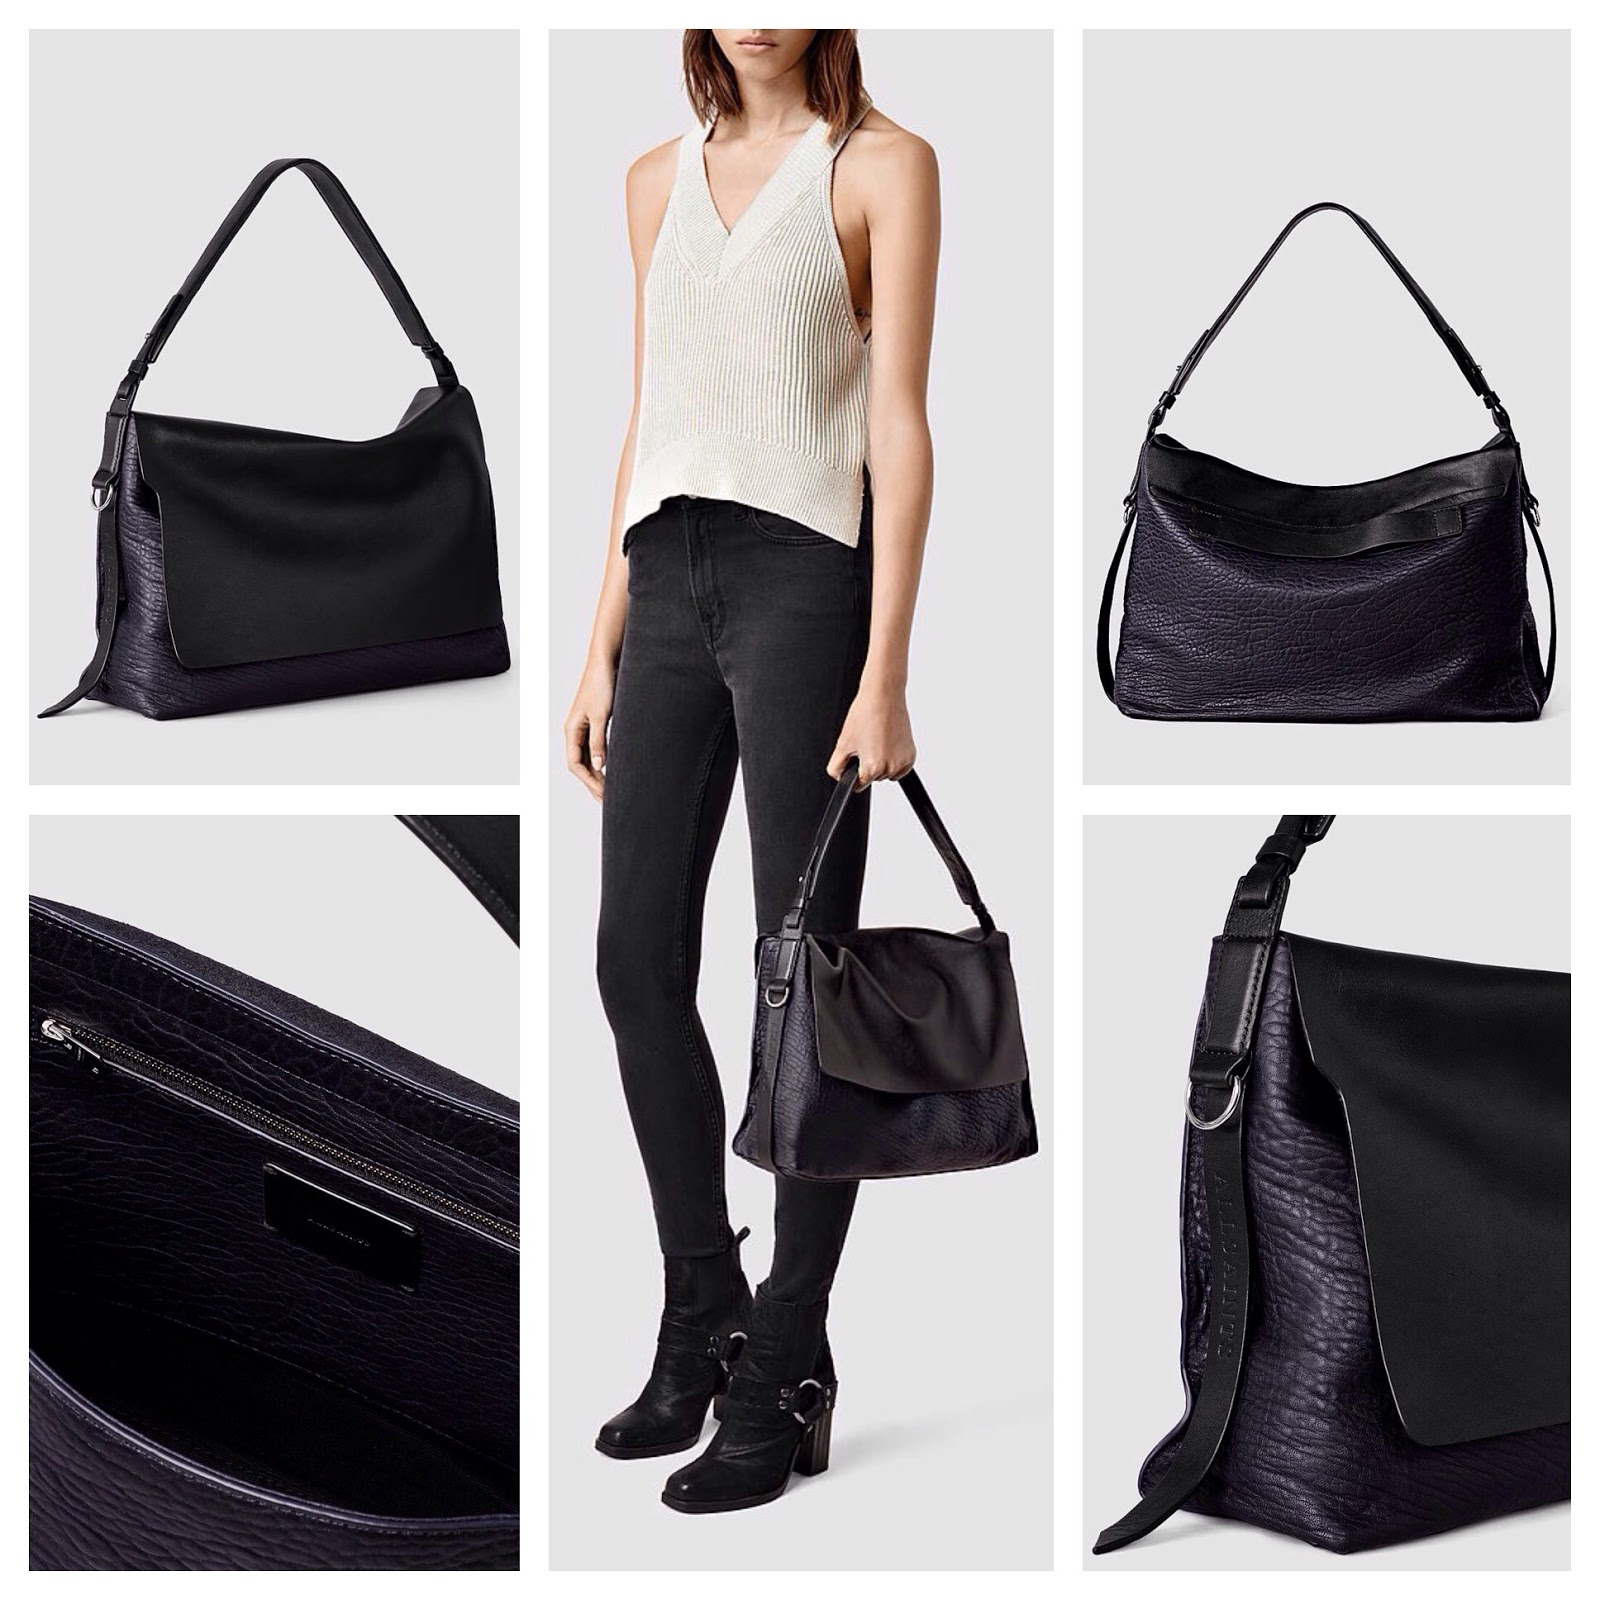 be6435c65 I also just ordered this crossbody for summer. Really high quality leather,  great construction, and they will match your leather jacket. :D